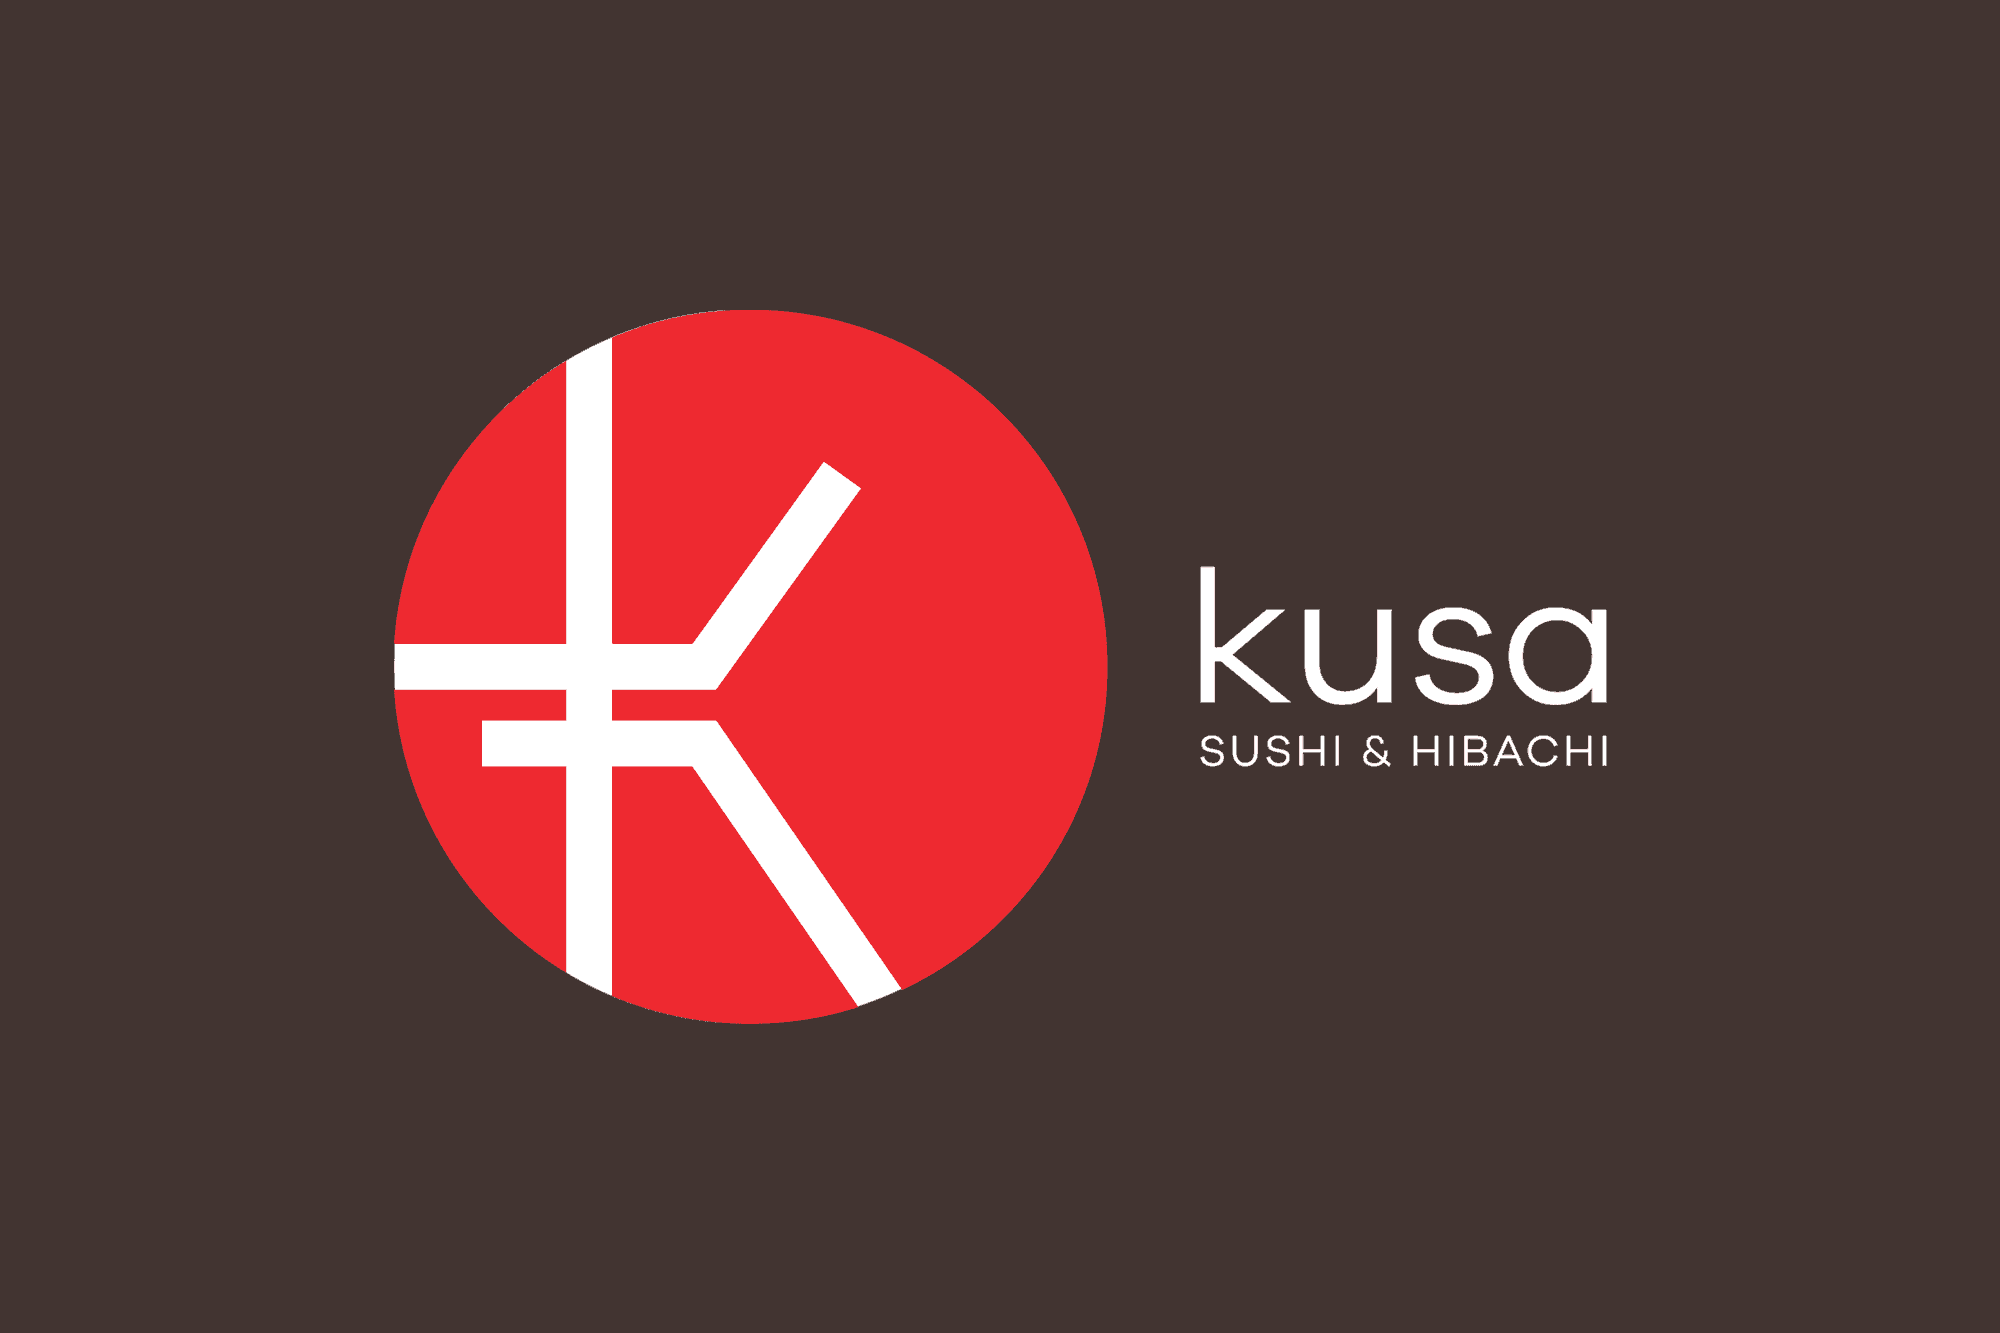 kusa japanese logo design dallas